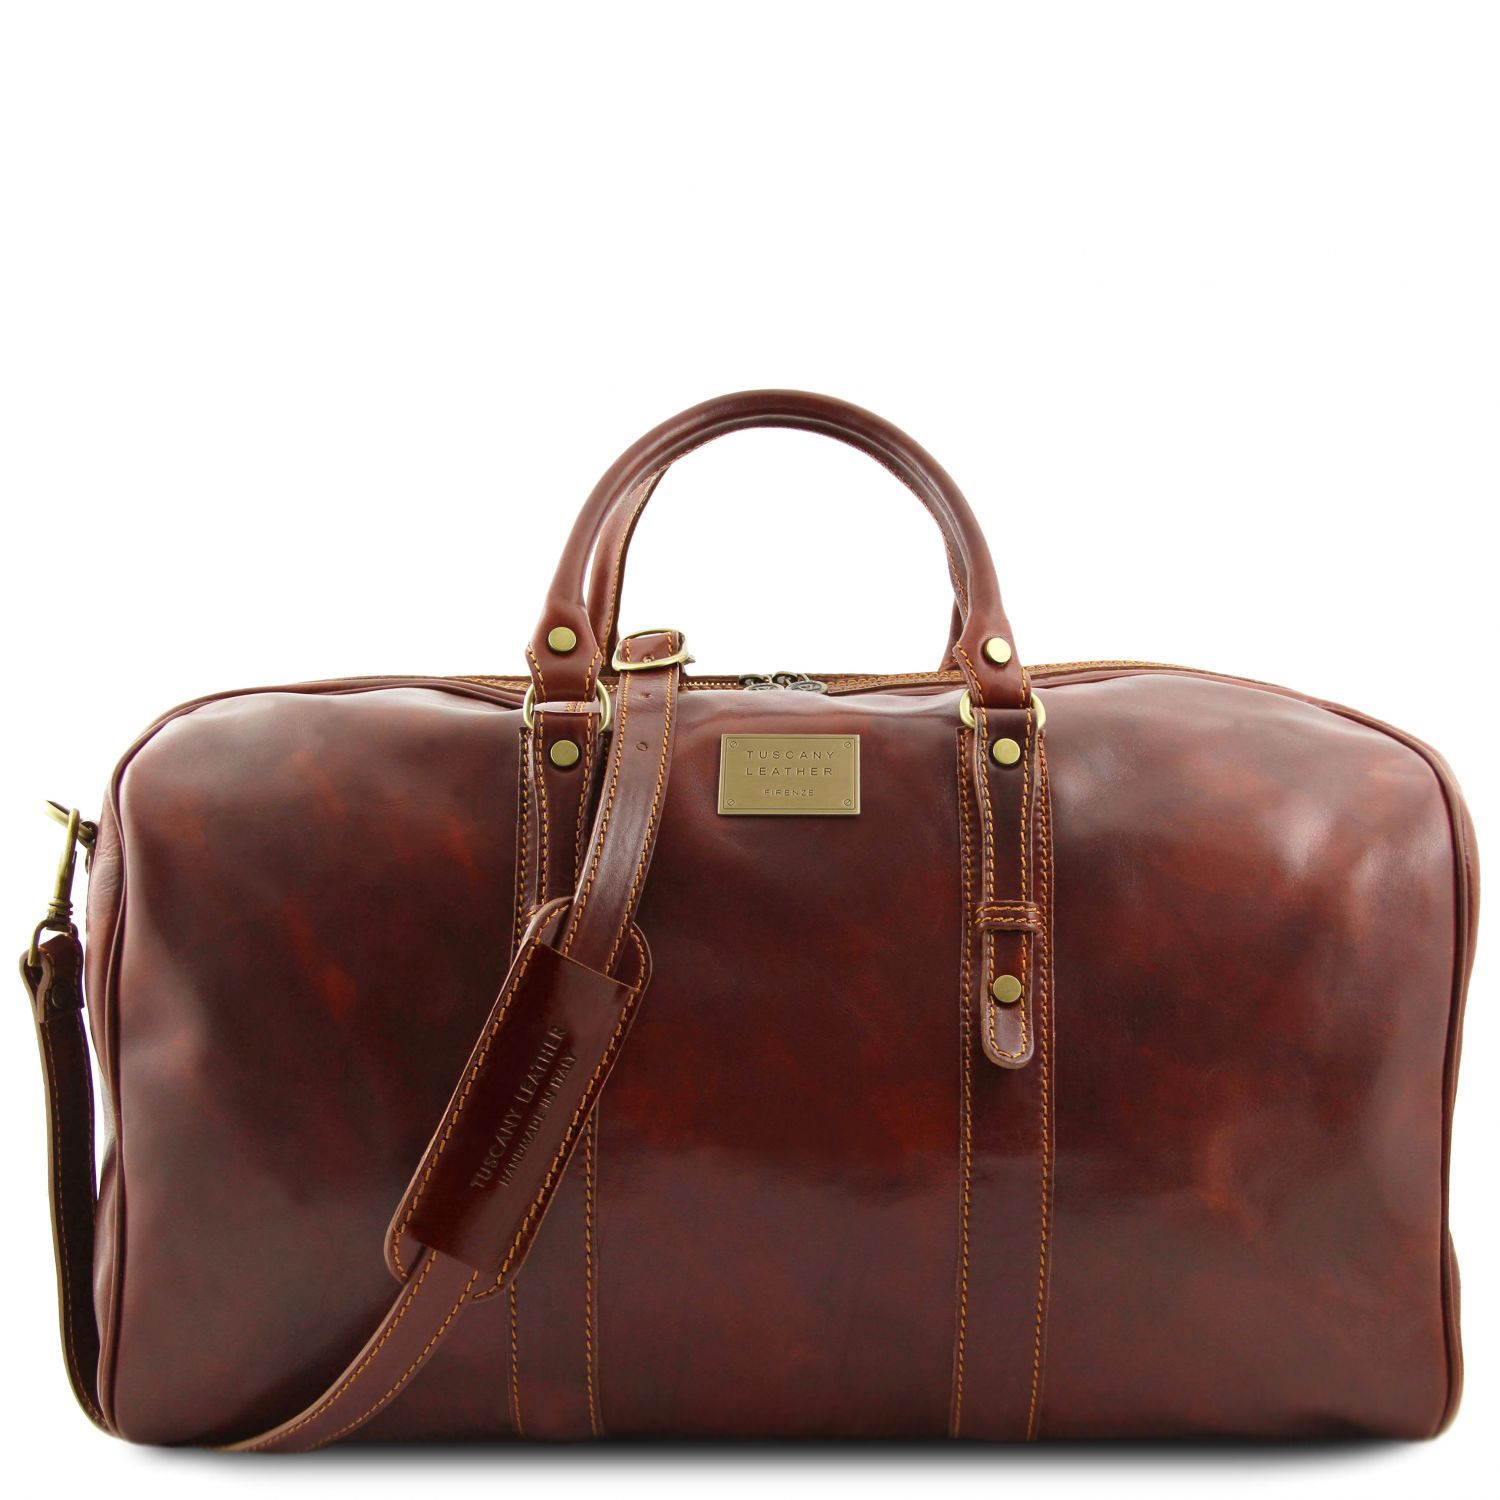 Francoforte - Exclusive Leather Weekender Travel Bag - Large size (FC140860) - Leather Travel bags | DILUSSOBAGS